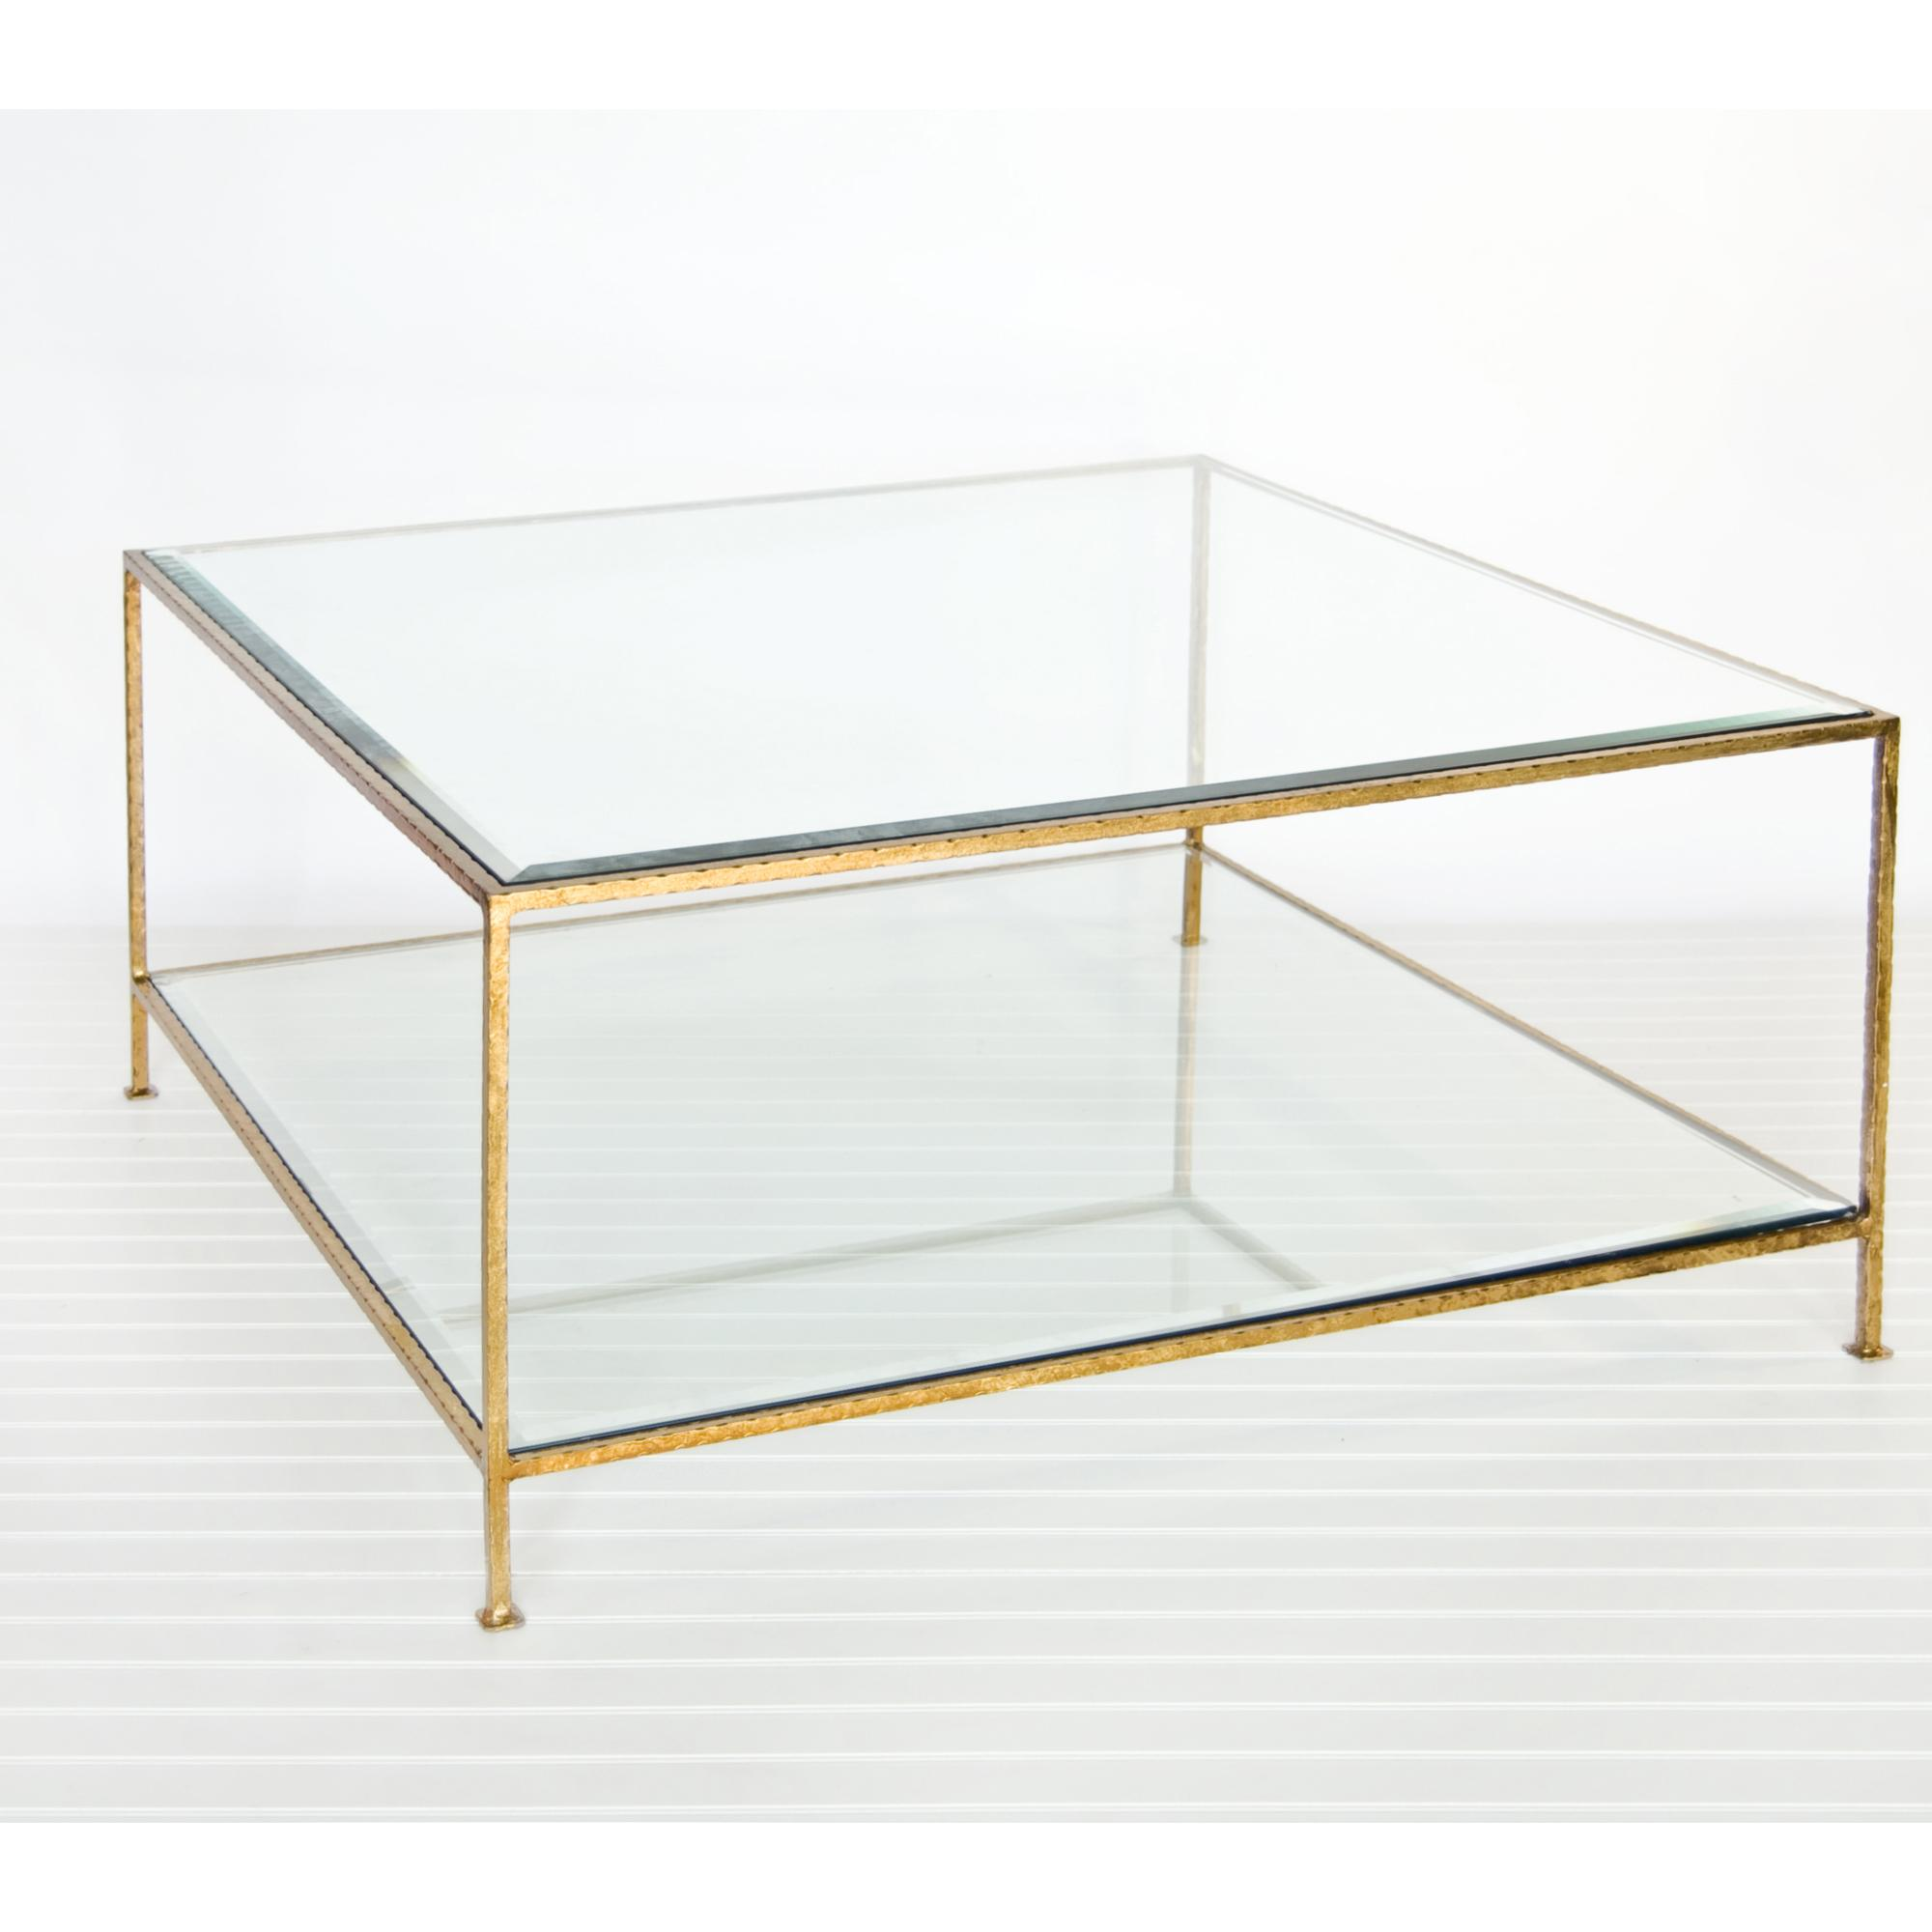 Gold And Glass Coffee Table Is This Lovely Recycled Wood Iron And Pine Shape Ensures That This Piece Will Make A Statement (Image 7 of 10)